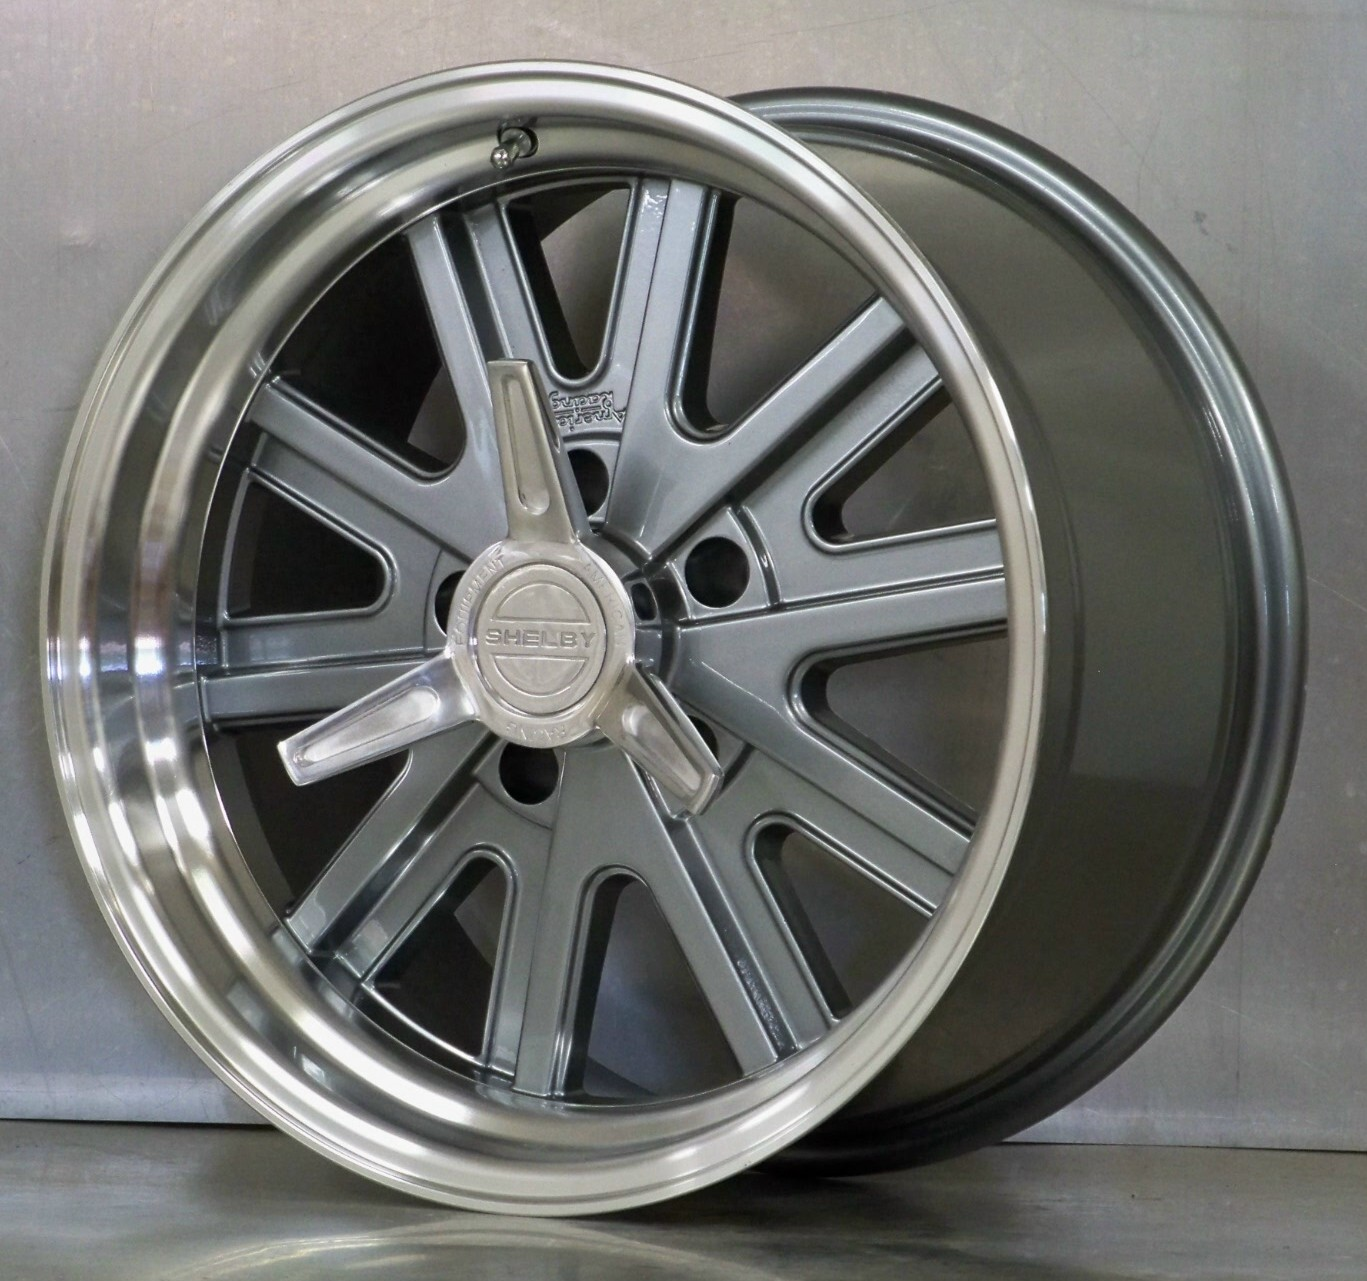 17s 527S set of 4 FF B and B and StreetBeast